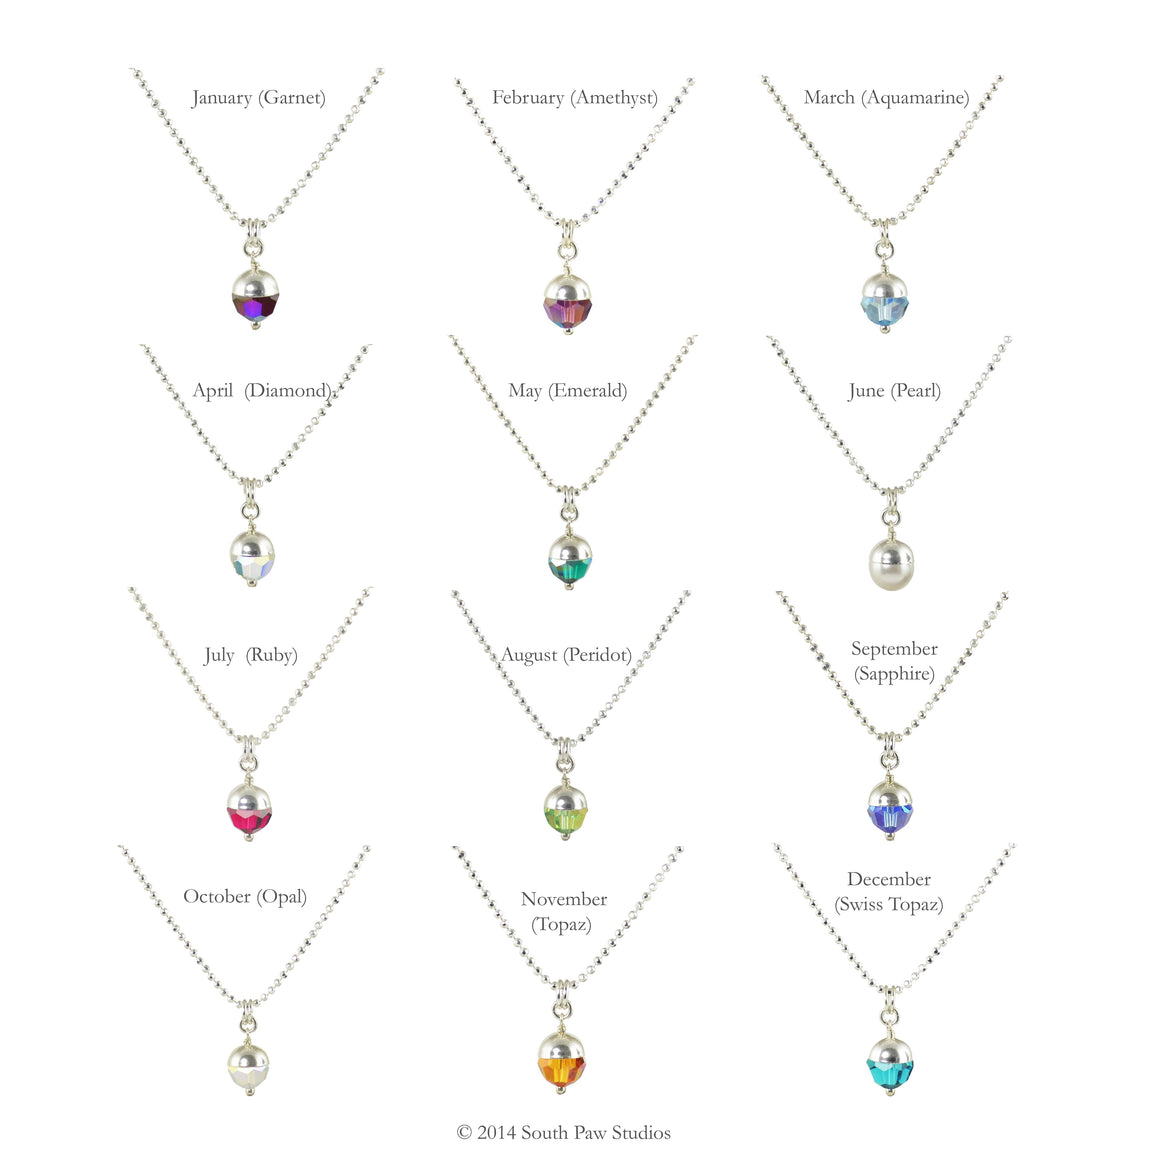 Birthstone Pendants made of Swarovski crystals on sterling silver chain